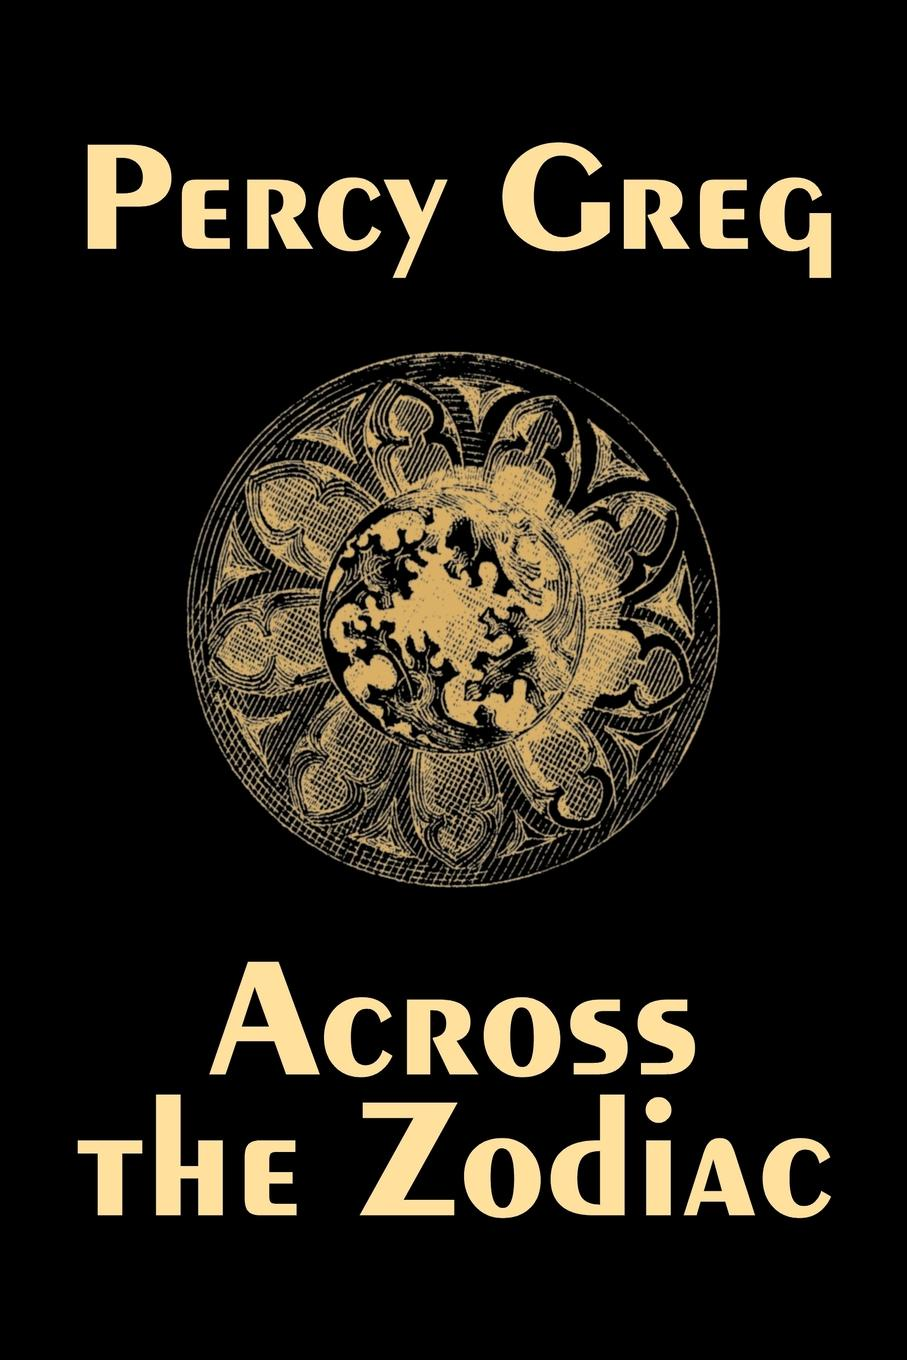 Percy Greg Across the Zodiac by Percy Greg, Science Fiction, Adventure, Space Opera fact ions for life